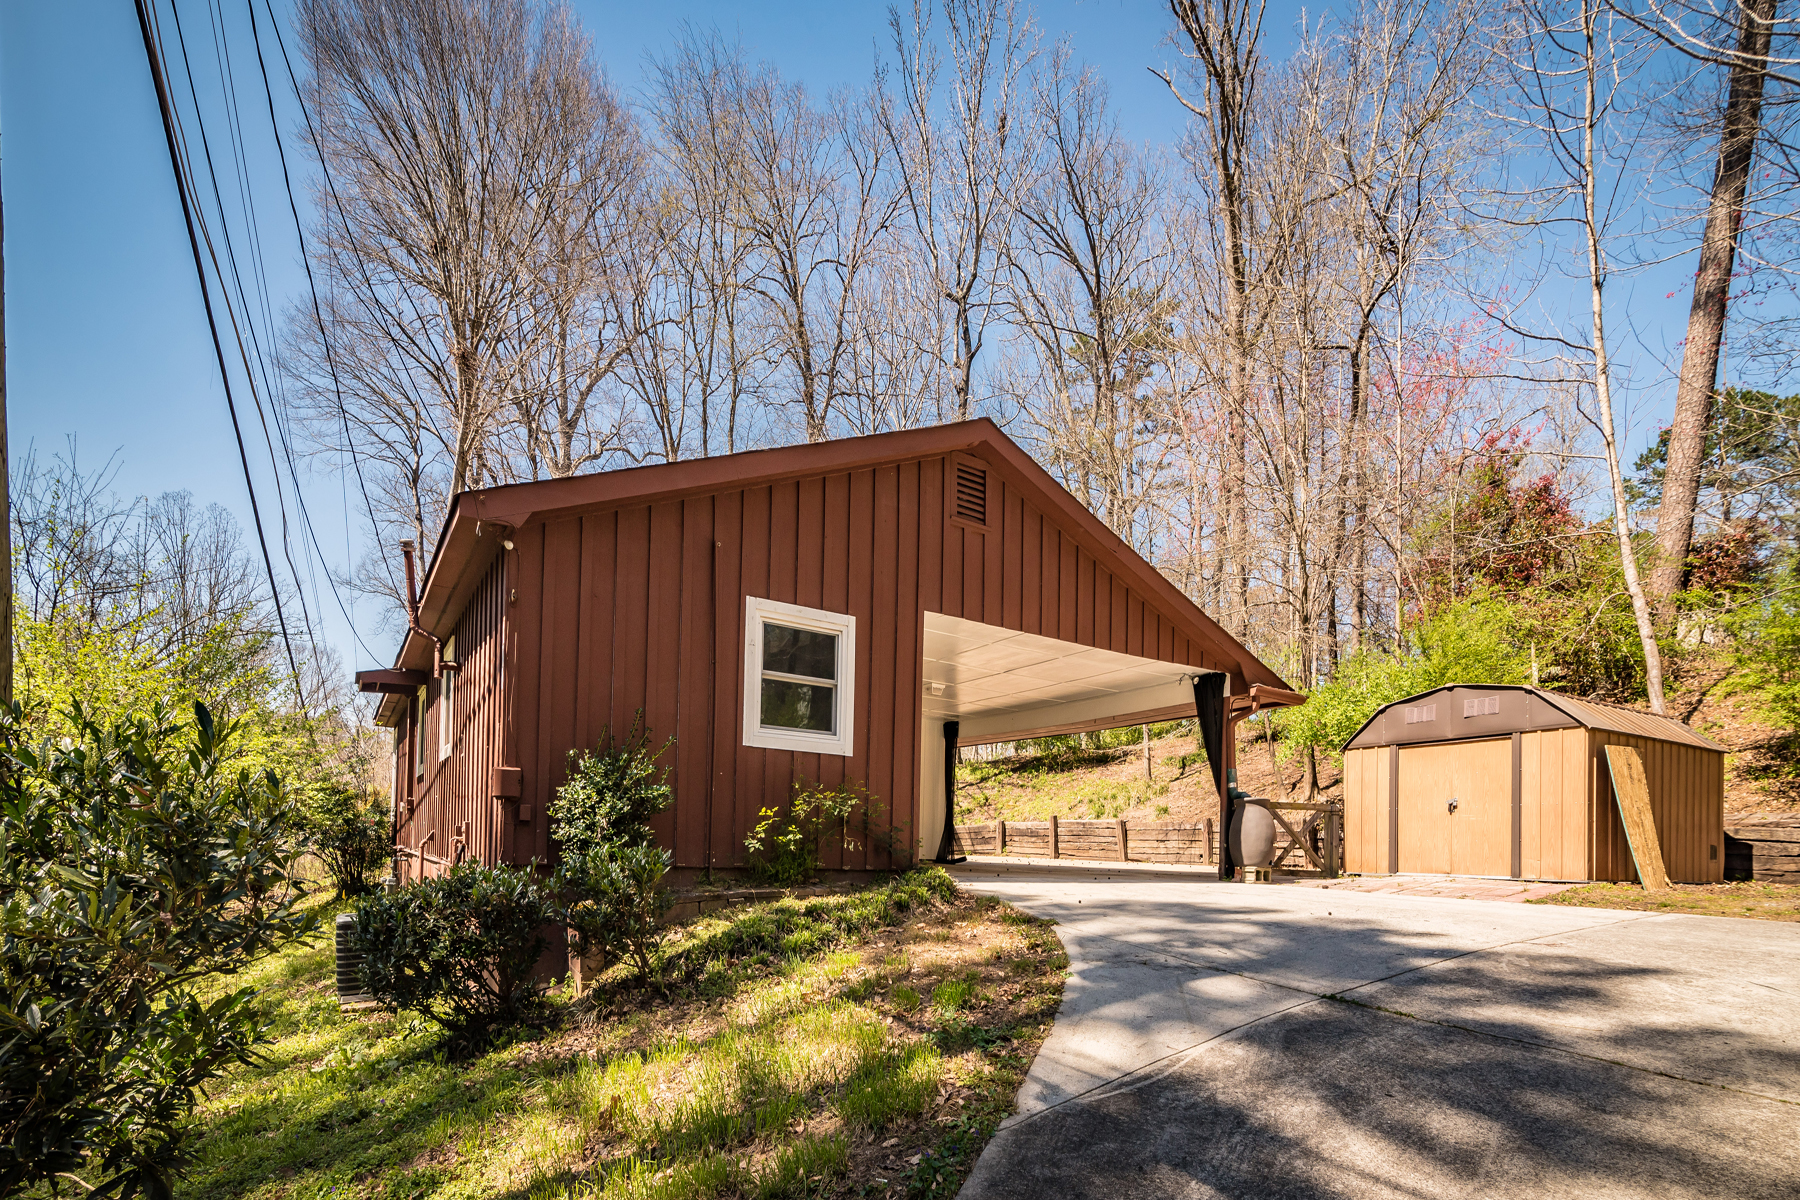 Single Family Home for Sale at Mountain Park Cozy Cabin 170 Mountain Park Rd Roswell, Georgia 30075 United States